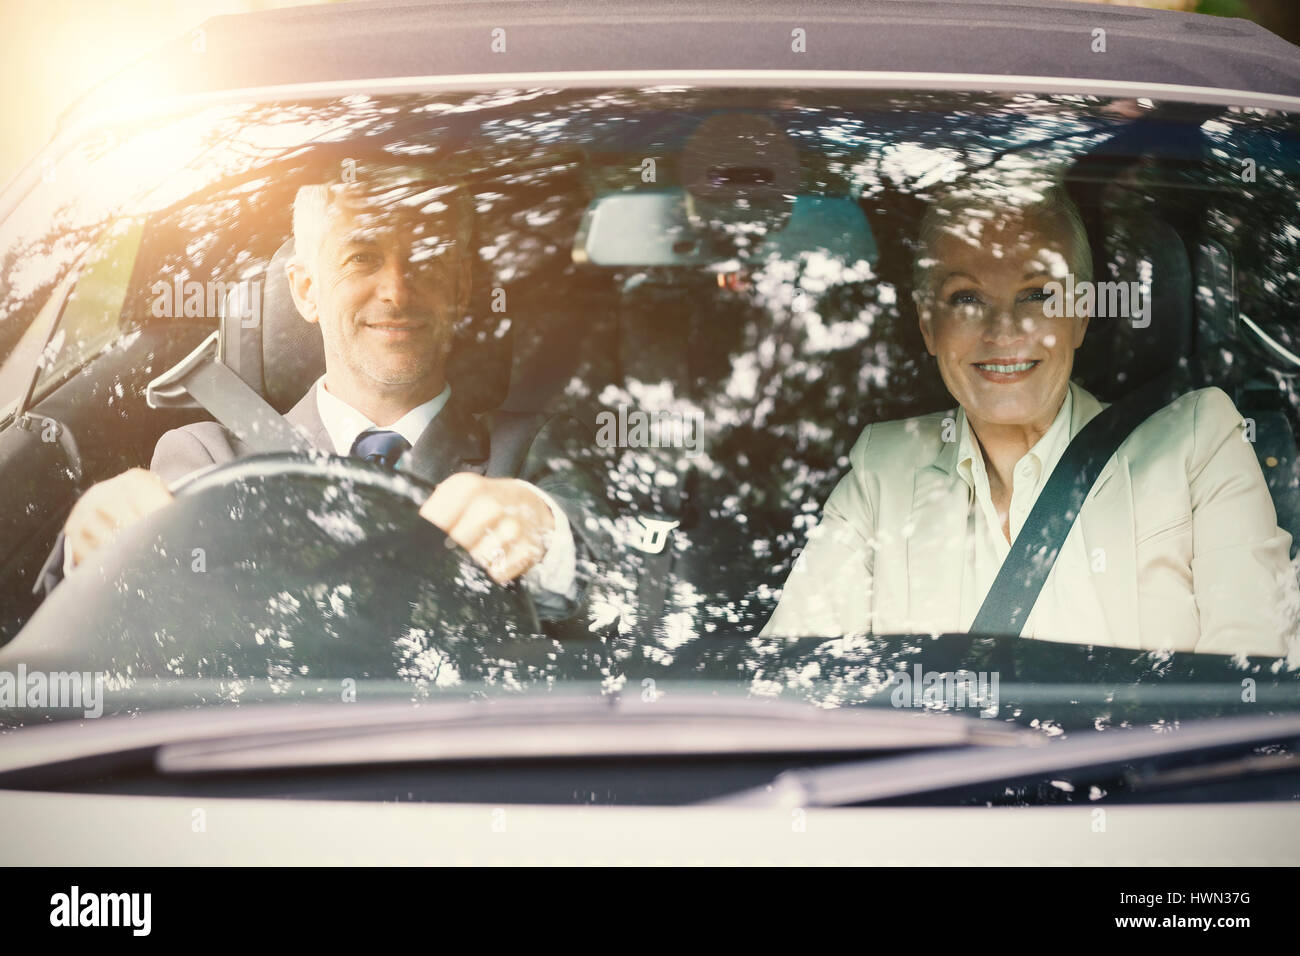 Couple in a car - Stock Image